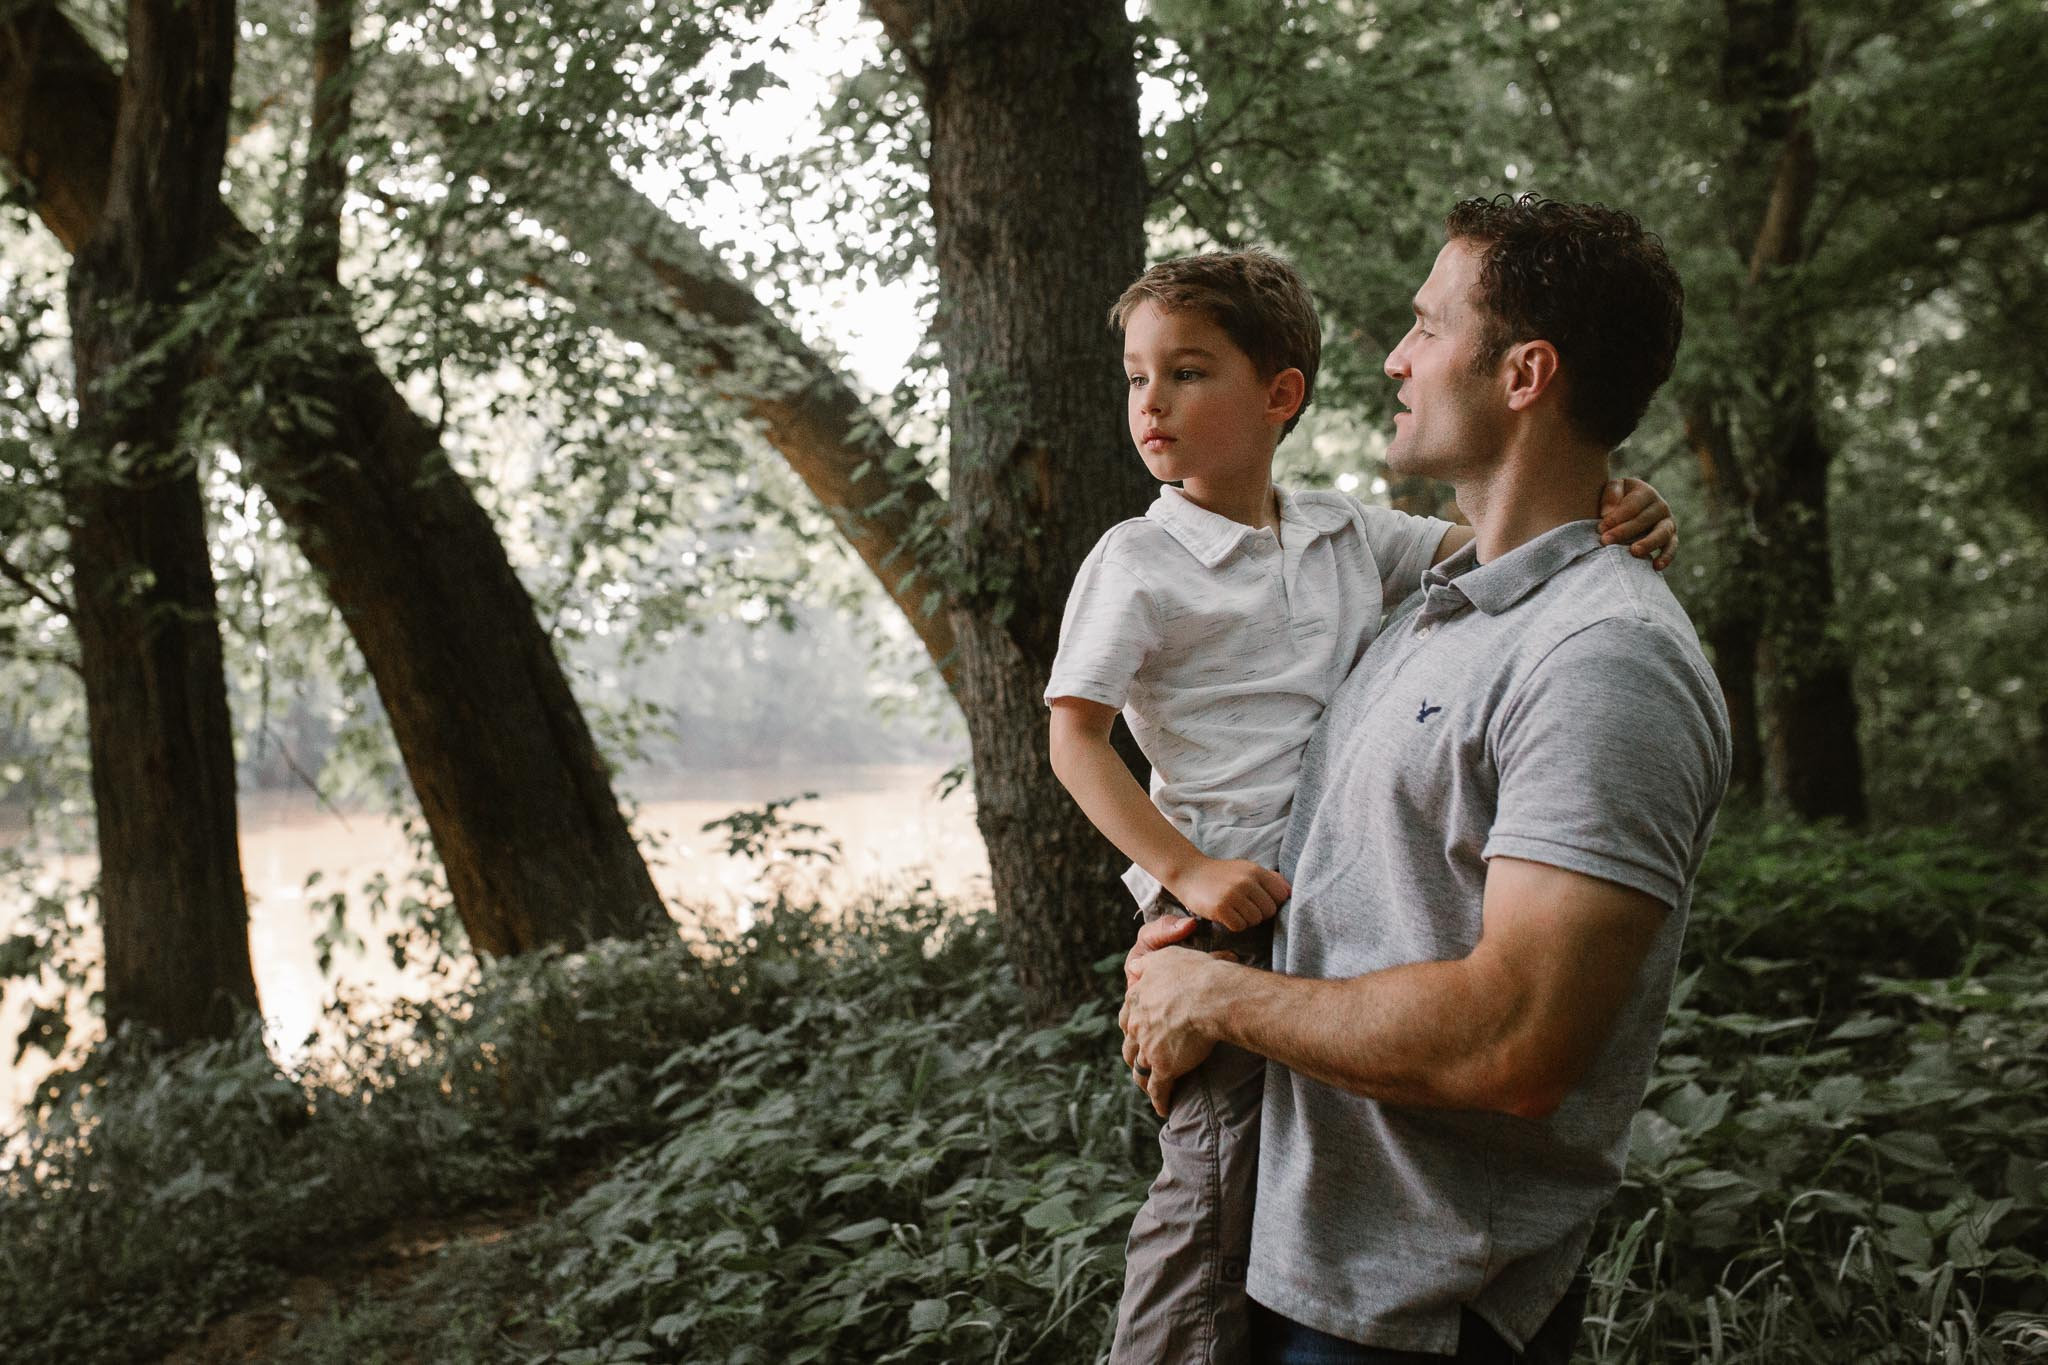 lifestyle family photography father and son  at Bles Park in Ashburn, Virginia